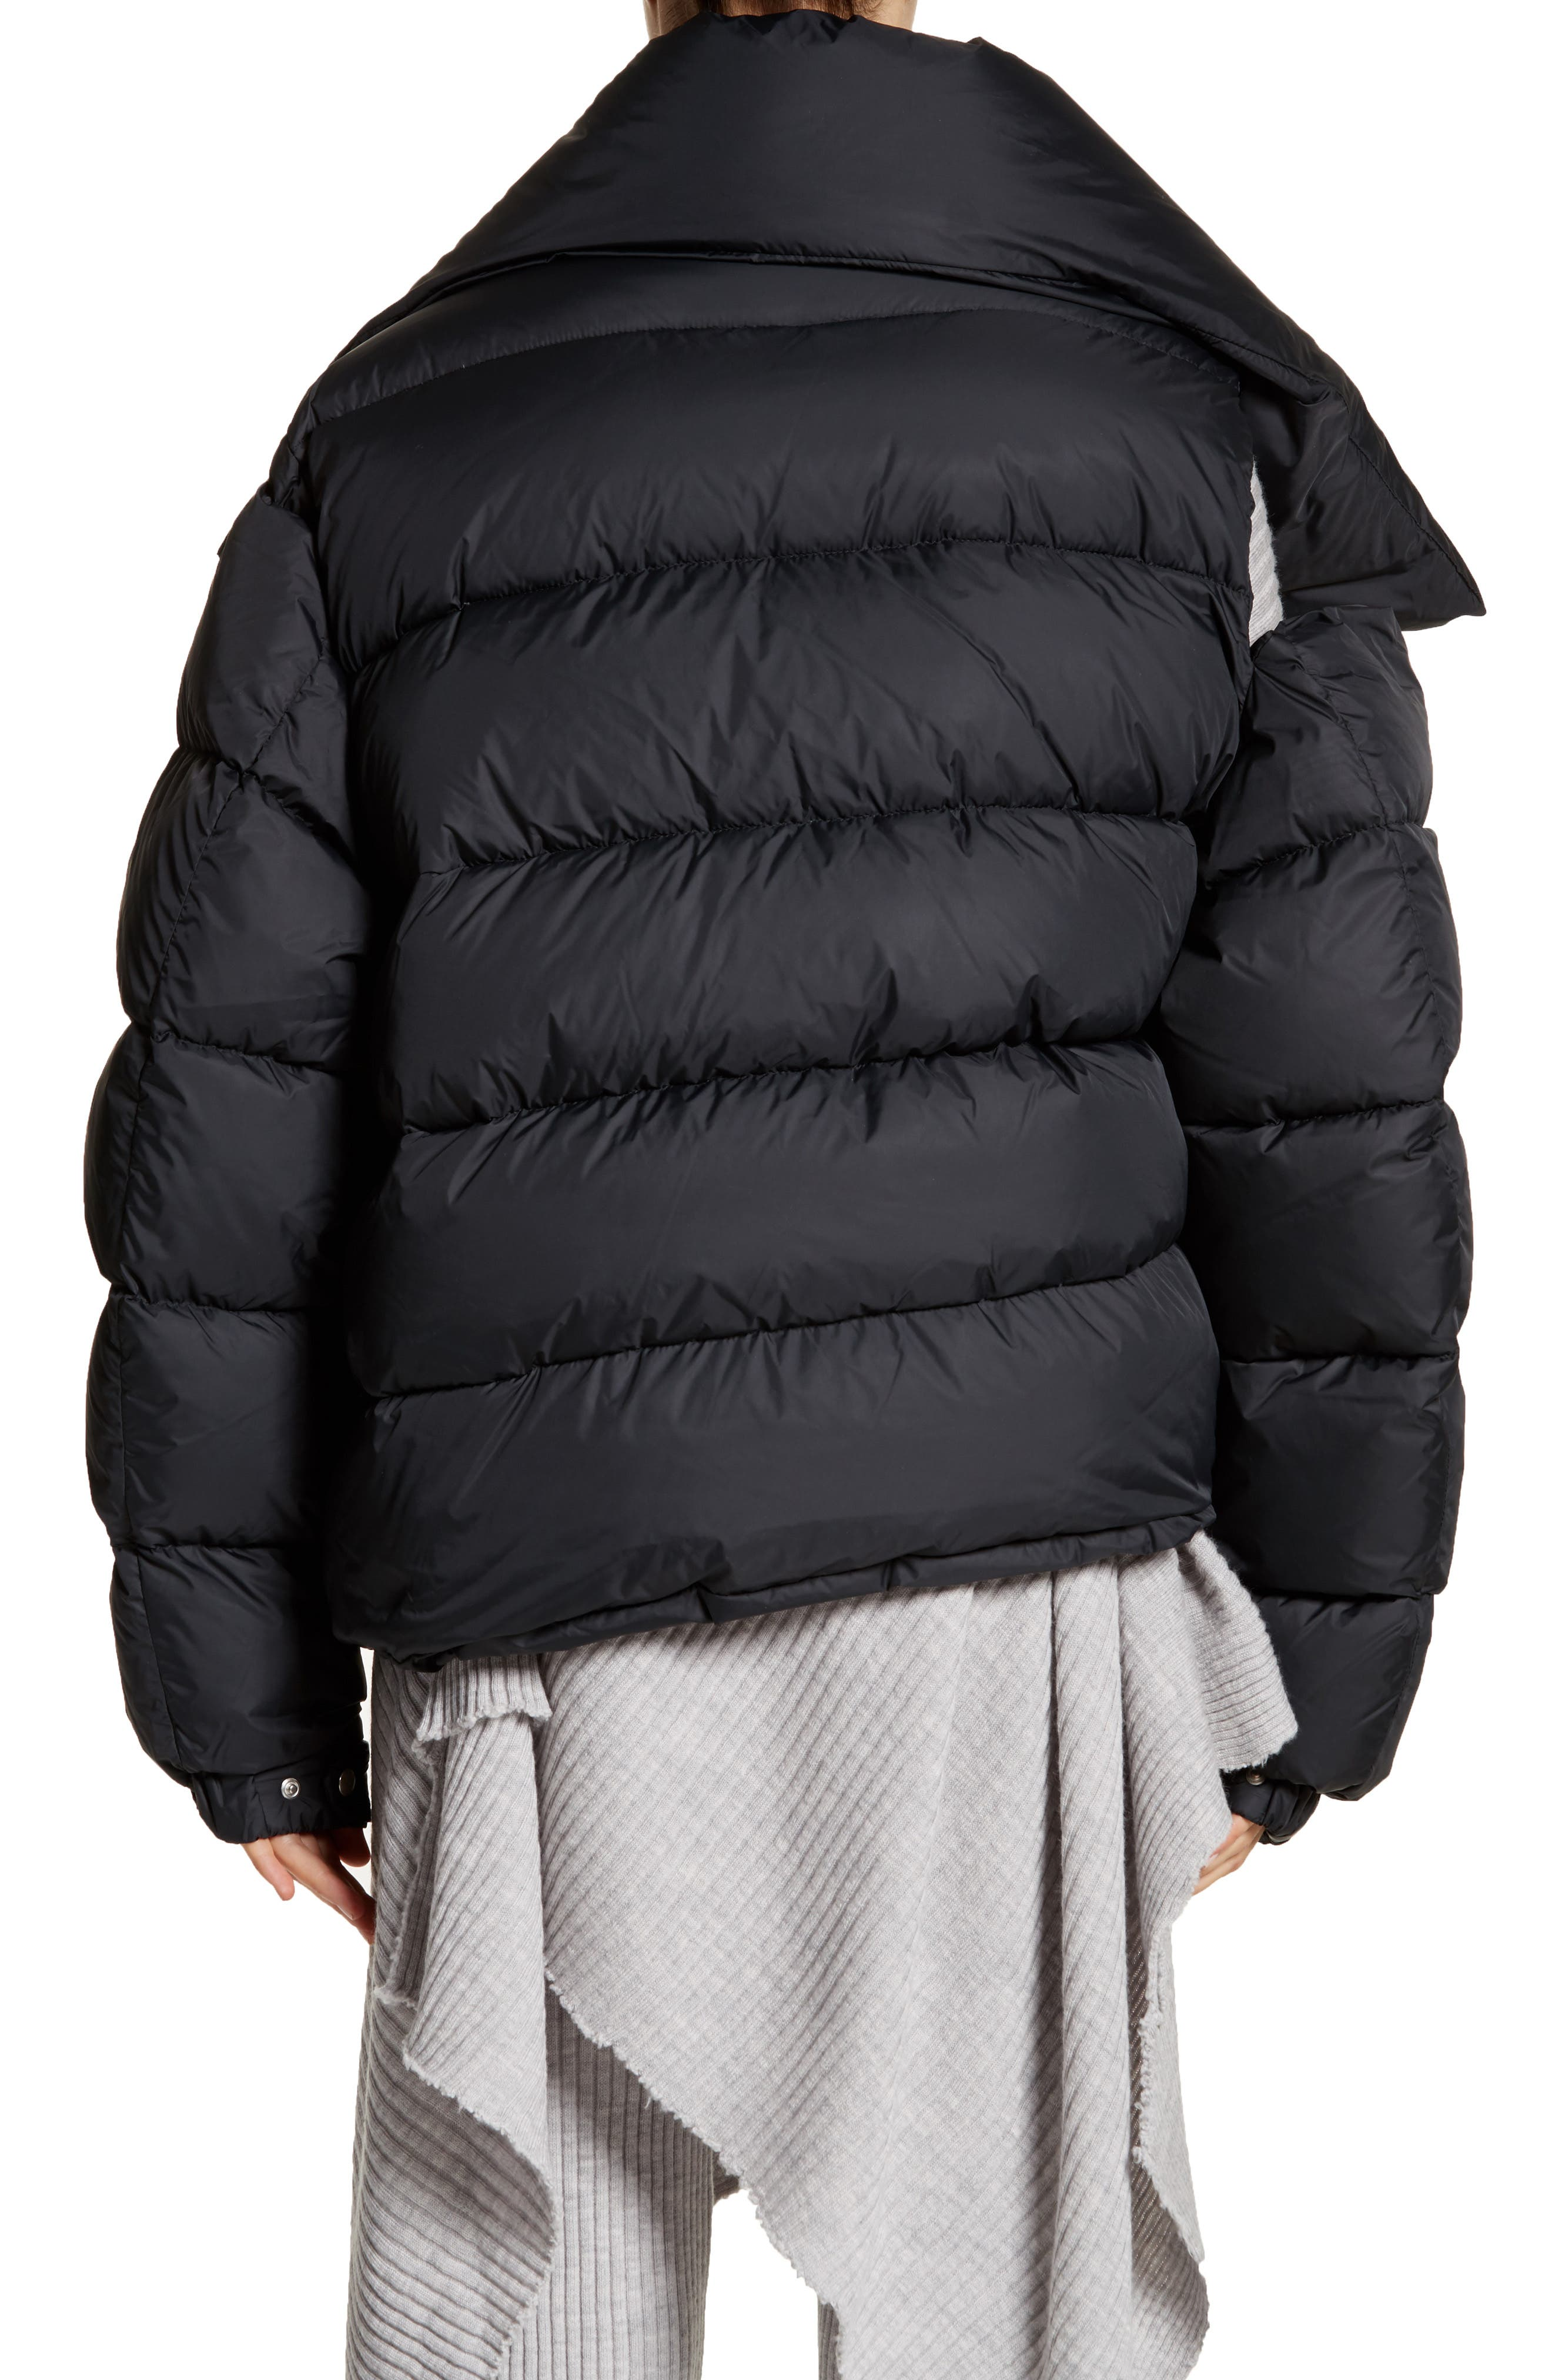 Marques'Almeida Asymmetrical Down Puffer Coat with Safety Pin Closure,                             Alternate thumbnail 2, color,                             001